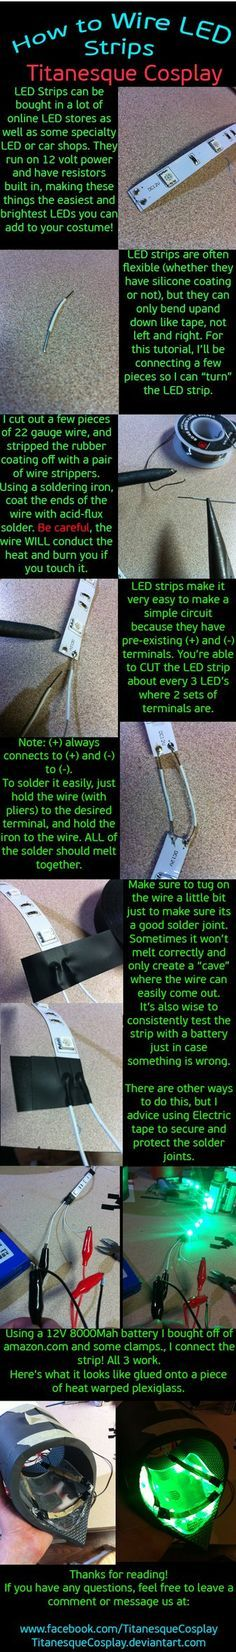 How to wire LED Strips by TitanesqueCosplay on deviantART